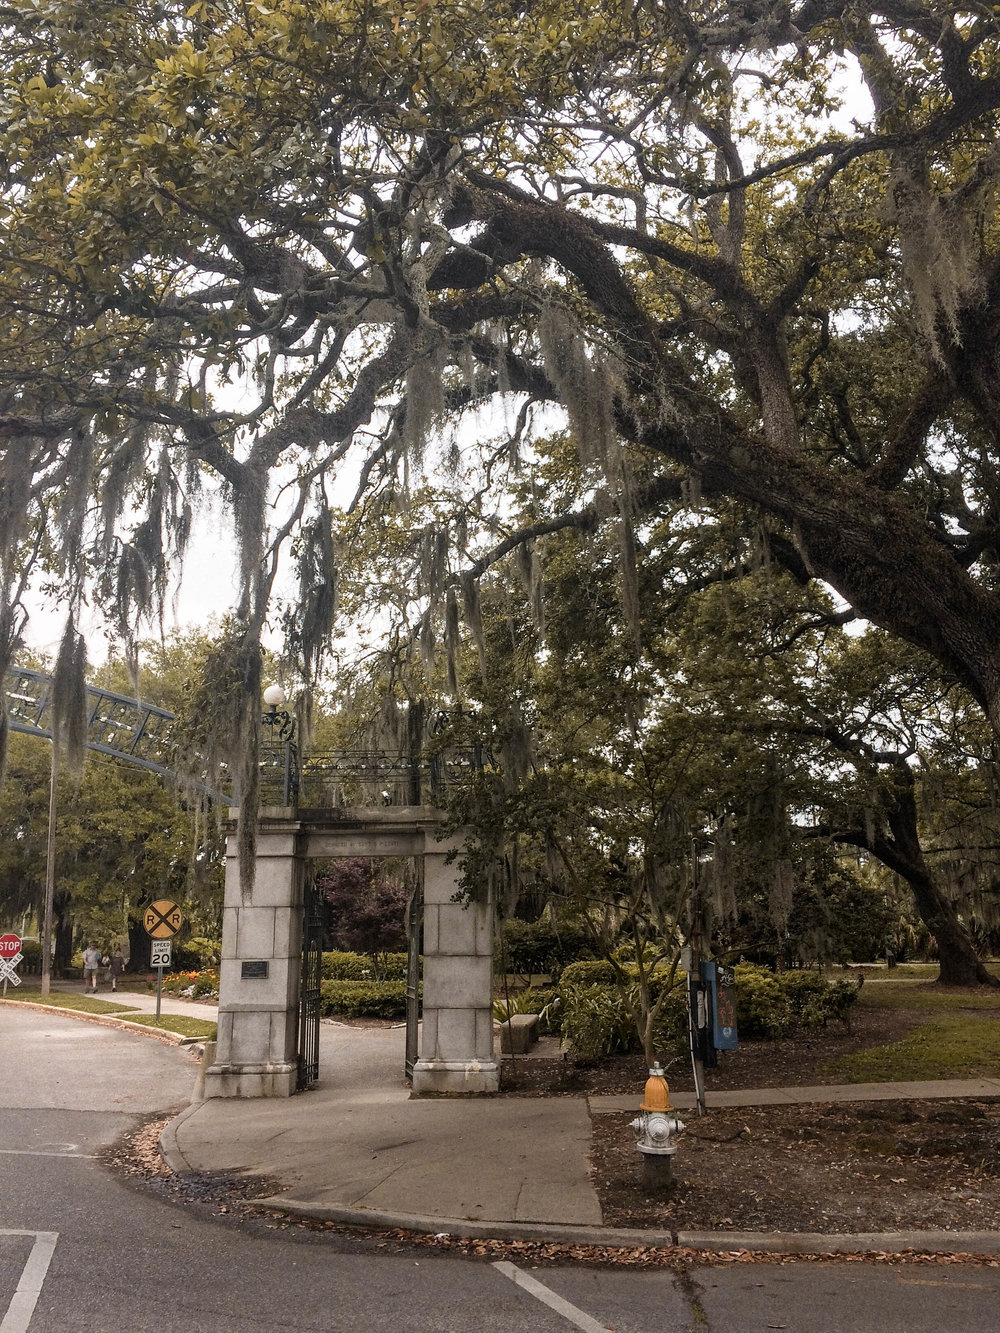 If you've ever held the belief that travel is expensive or solo travel is dangerous and scary - but have secretly wanted to do both - this post is for you!  My solo trip to New Orleans was the Abundant Result of flipping the script on those limiting beliefs! [City Park in New Orleans]